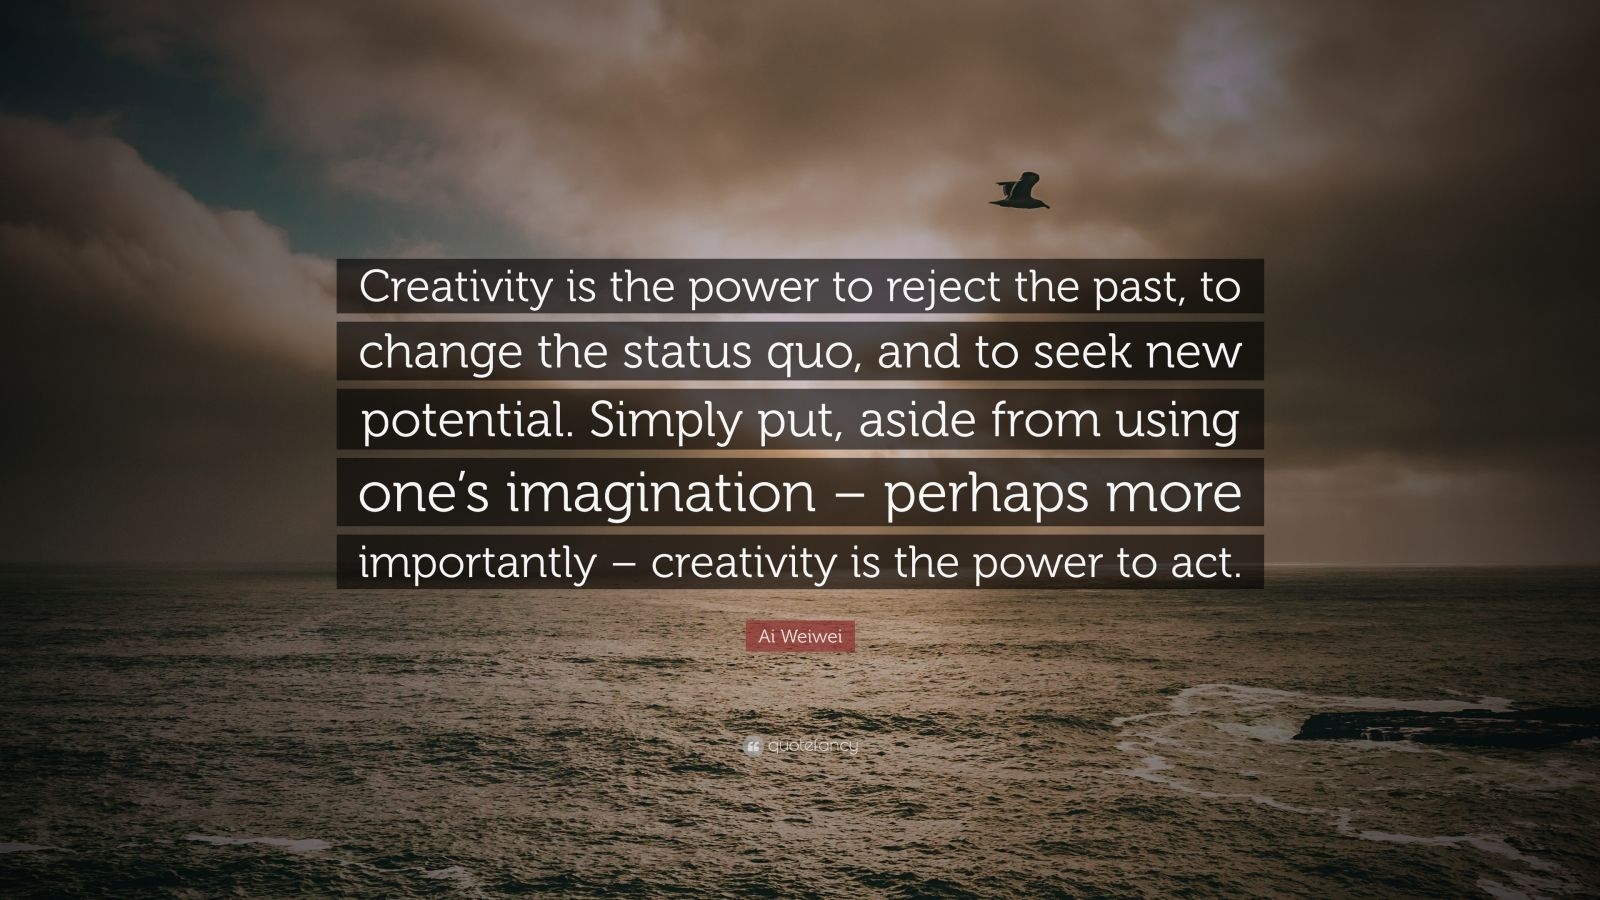 """Ai Weiwei Quote: """"Creativity is the power to reject the past, to change the status quo, and to seek new potential. Simply put, aside from using one's imagination – perhaps more importantly – creativity is the power to act."""""""